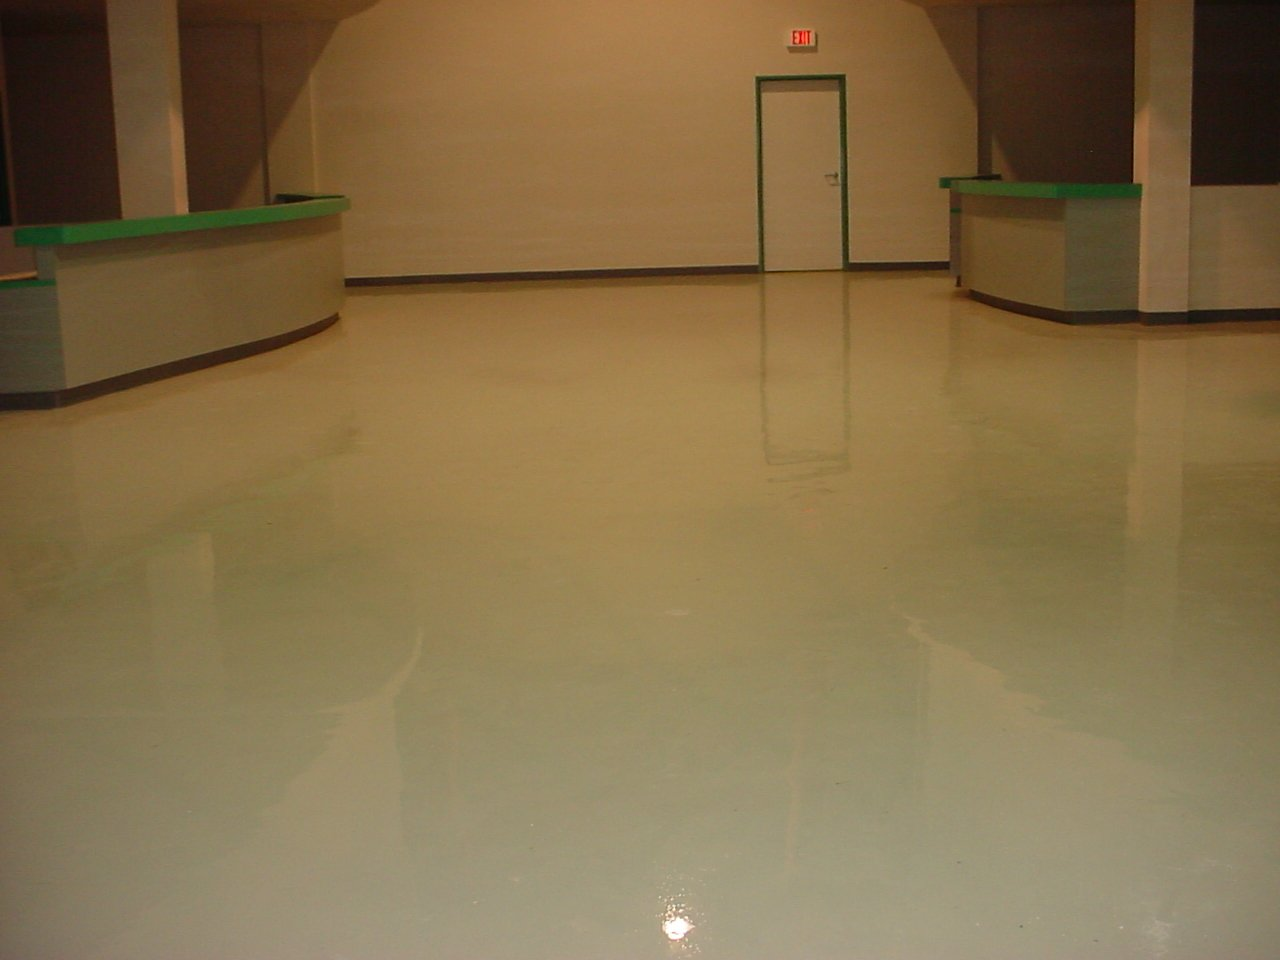 RUST-OLEUM Epoxy Shield garage floor coating